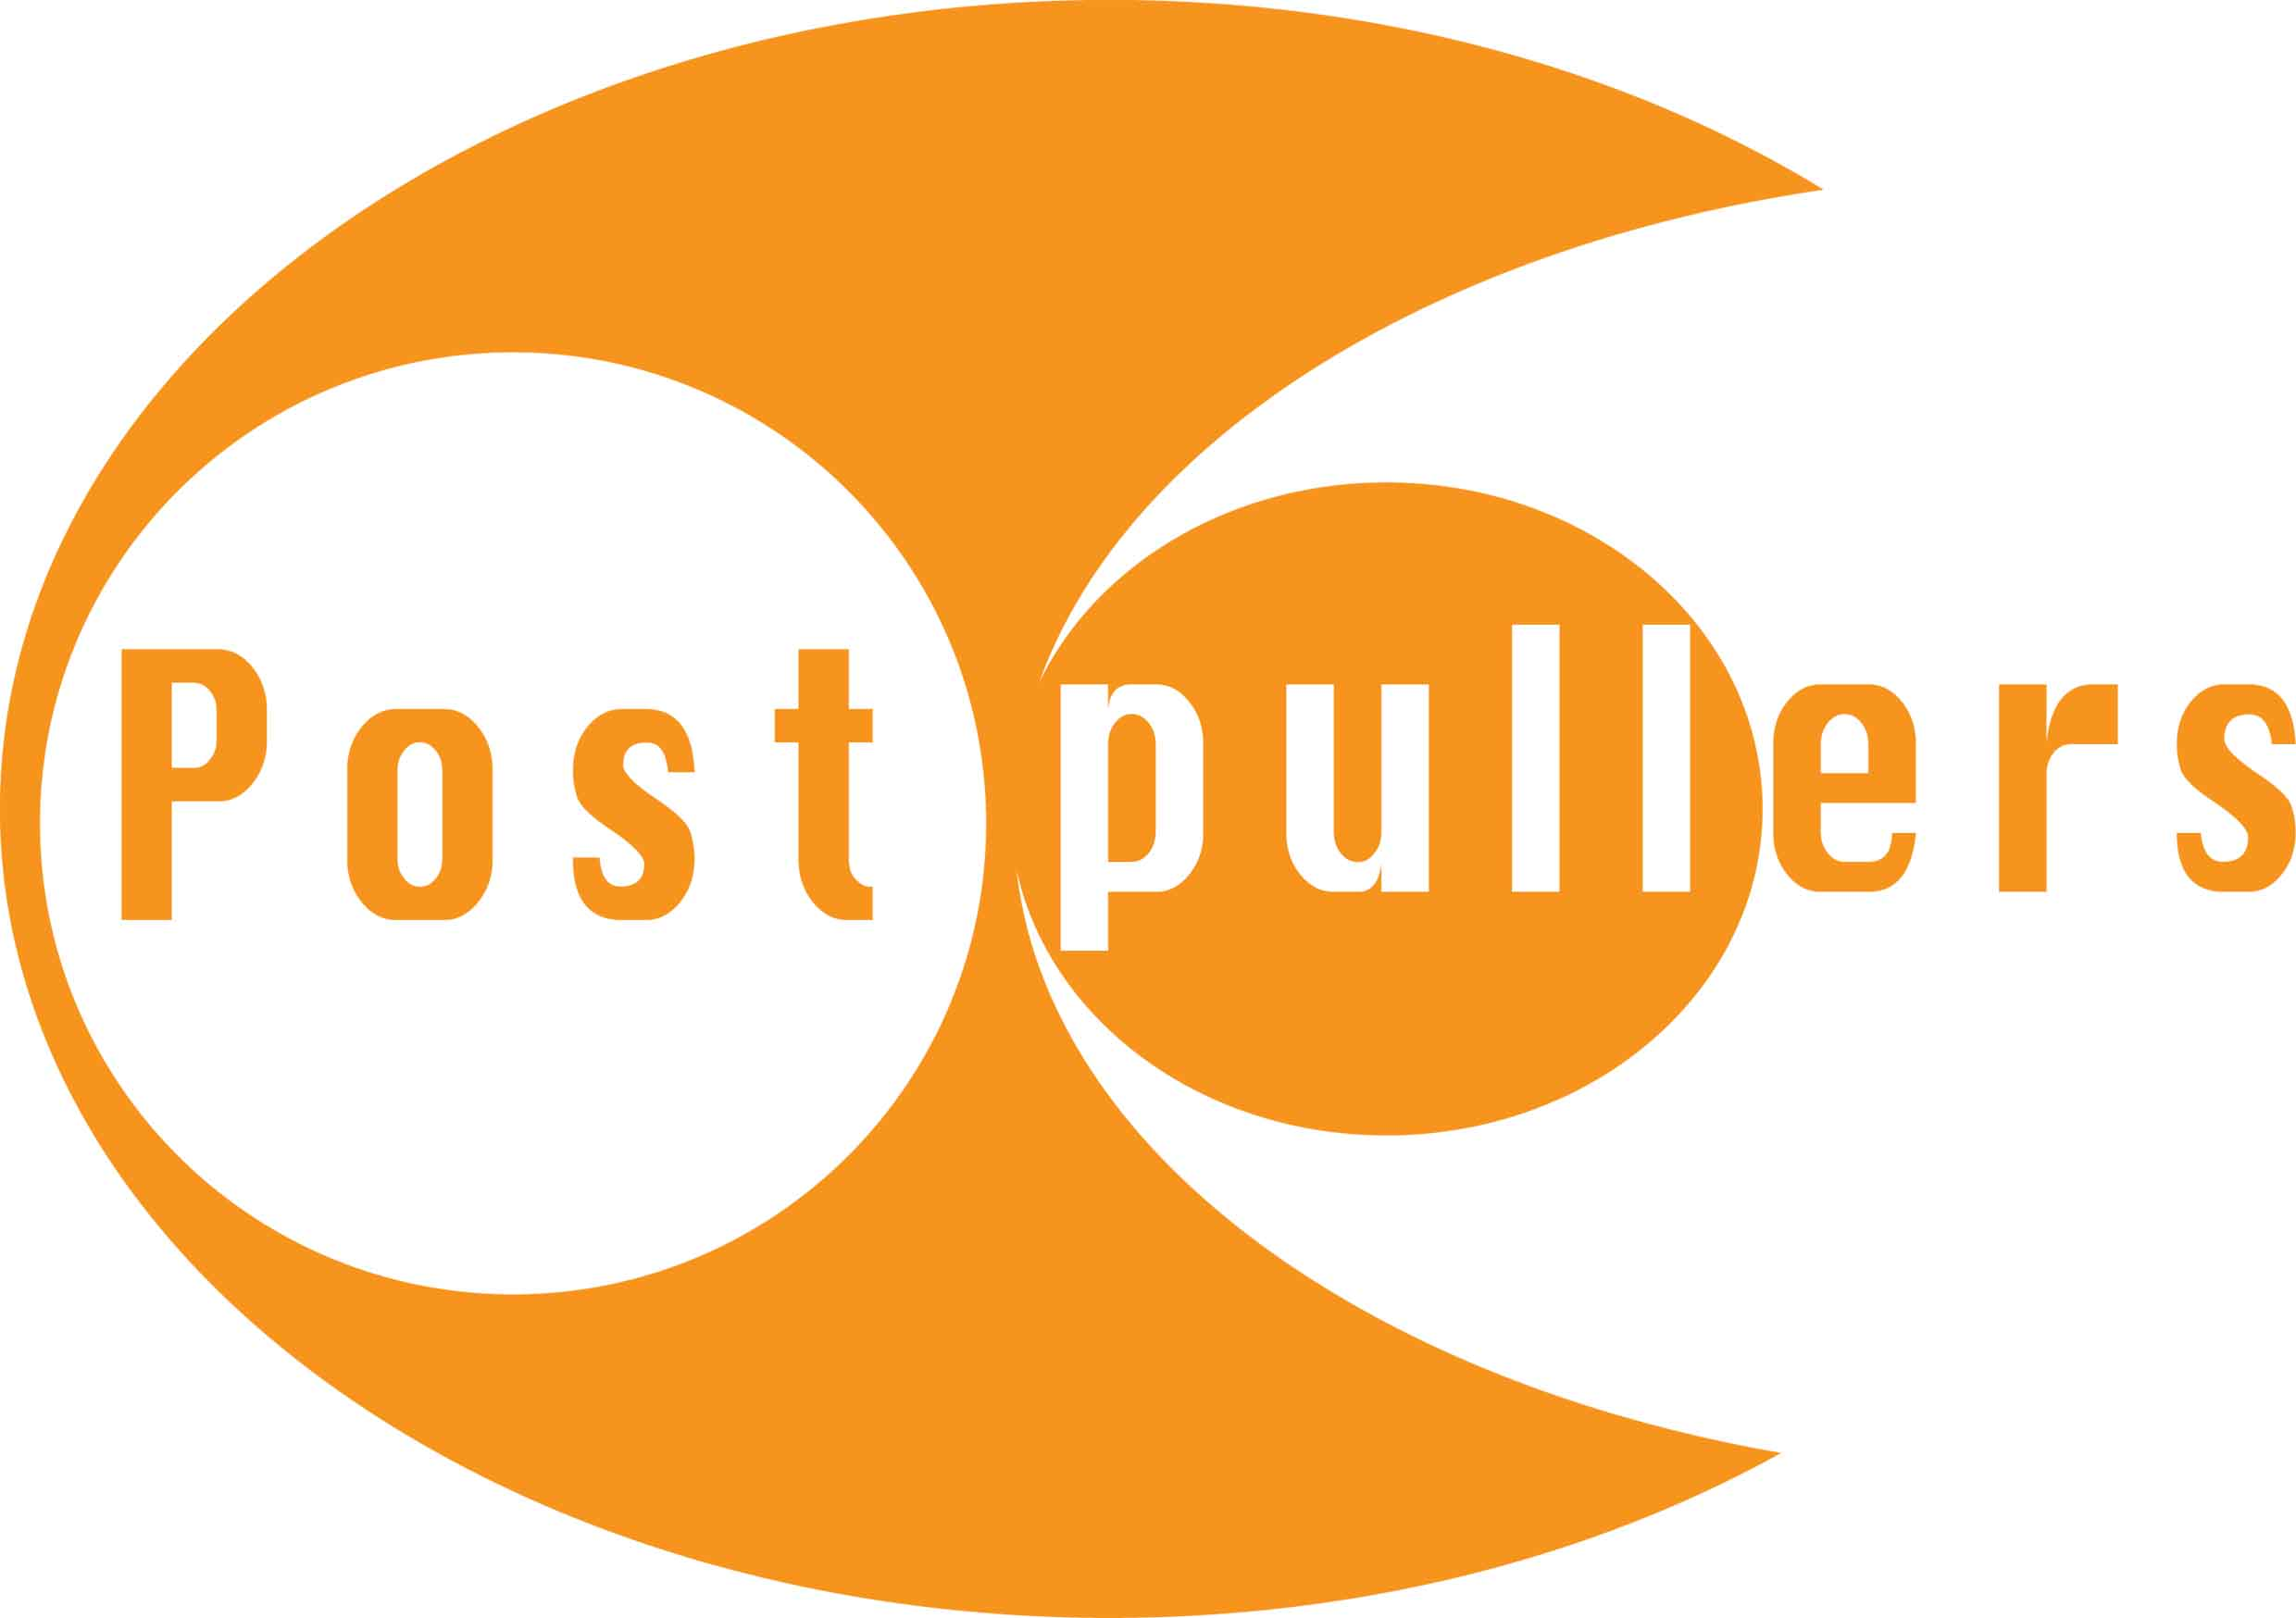 PostPullers (UK) Ltd